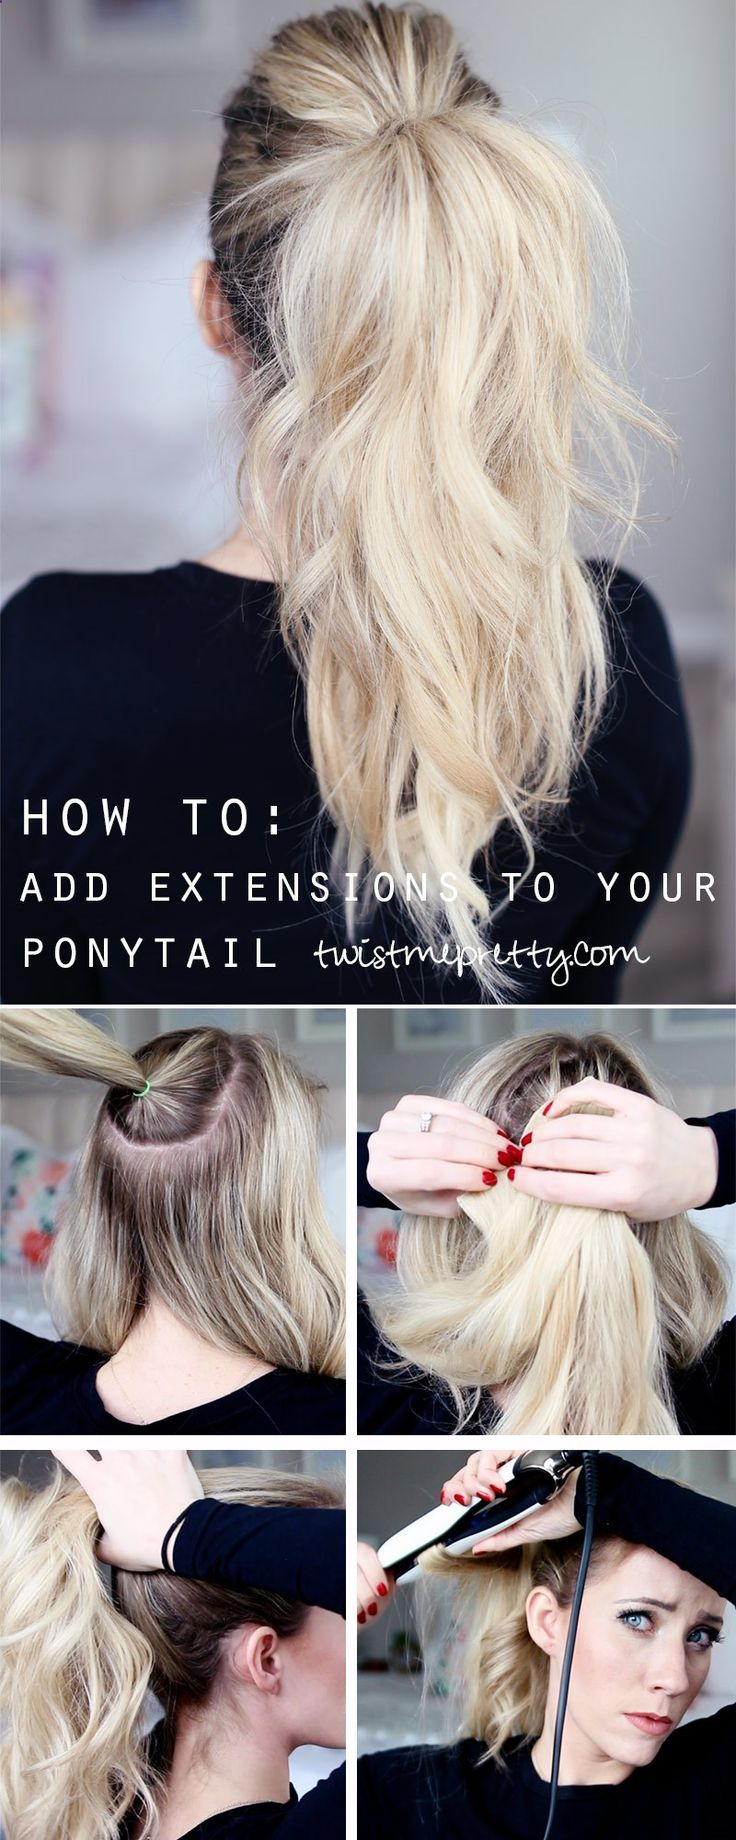 Hair Extensions - How to: Add Extensions to your ponytail   Twist Me Pretty